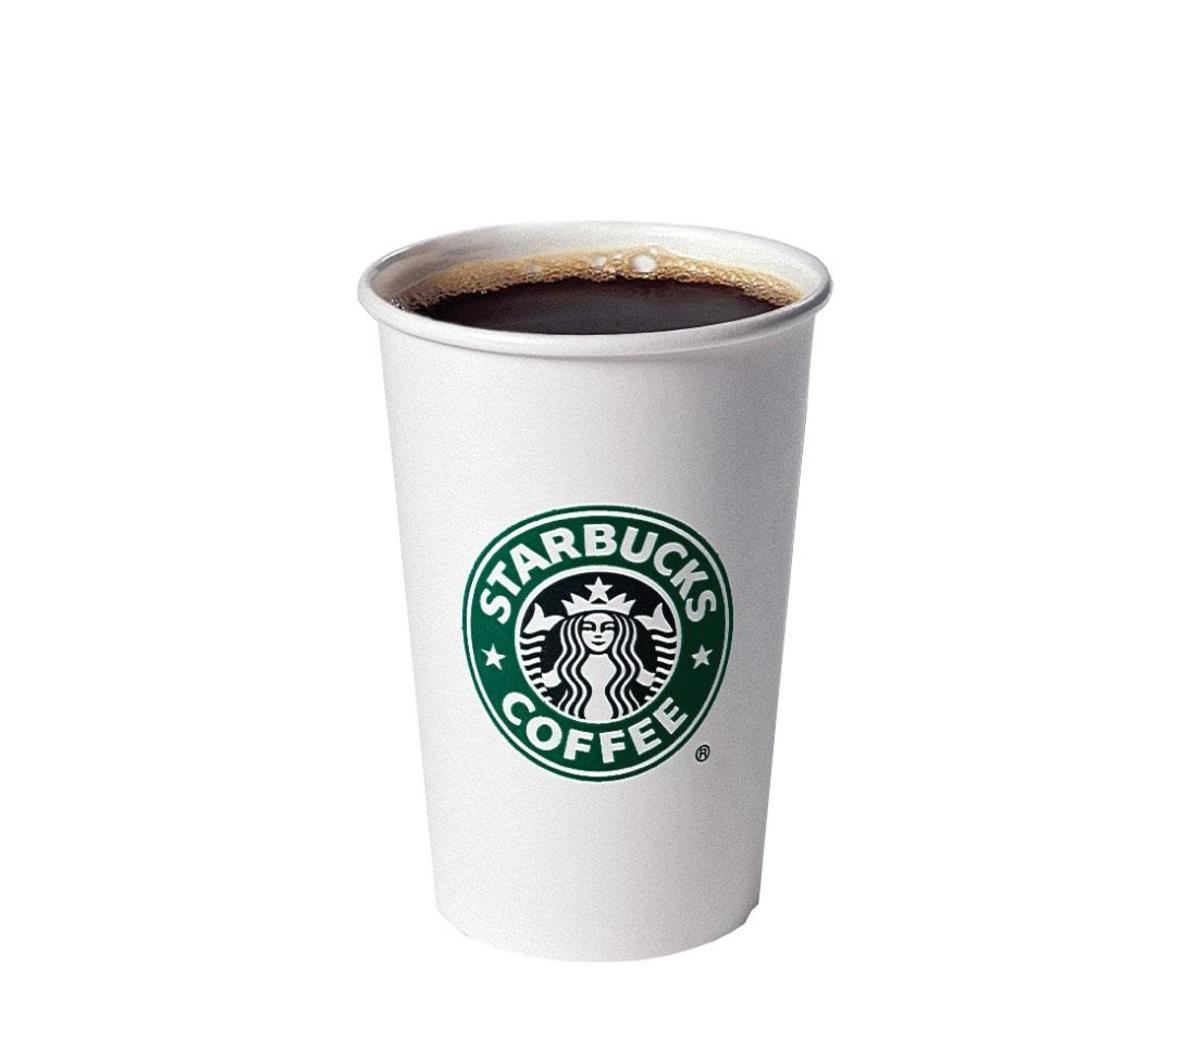 Coffee Americano Starbucks The Muse What Your Starbucks Order Says About You